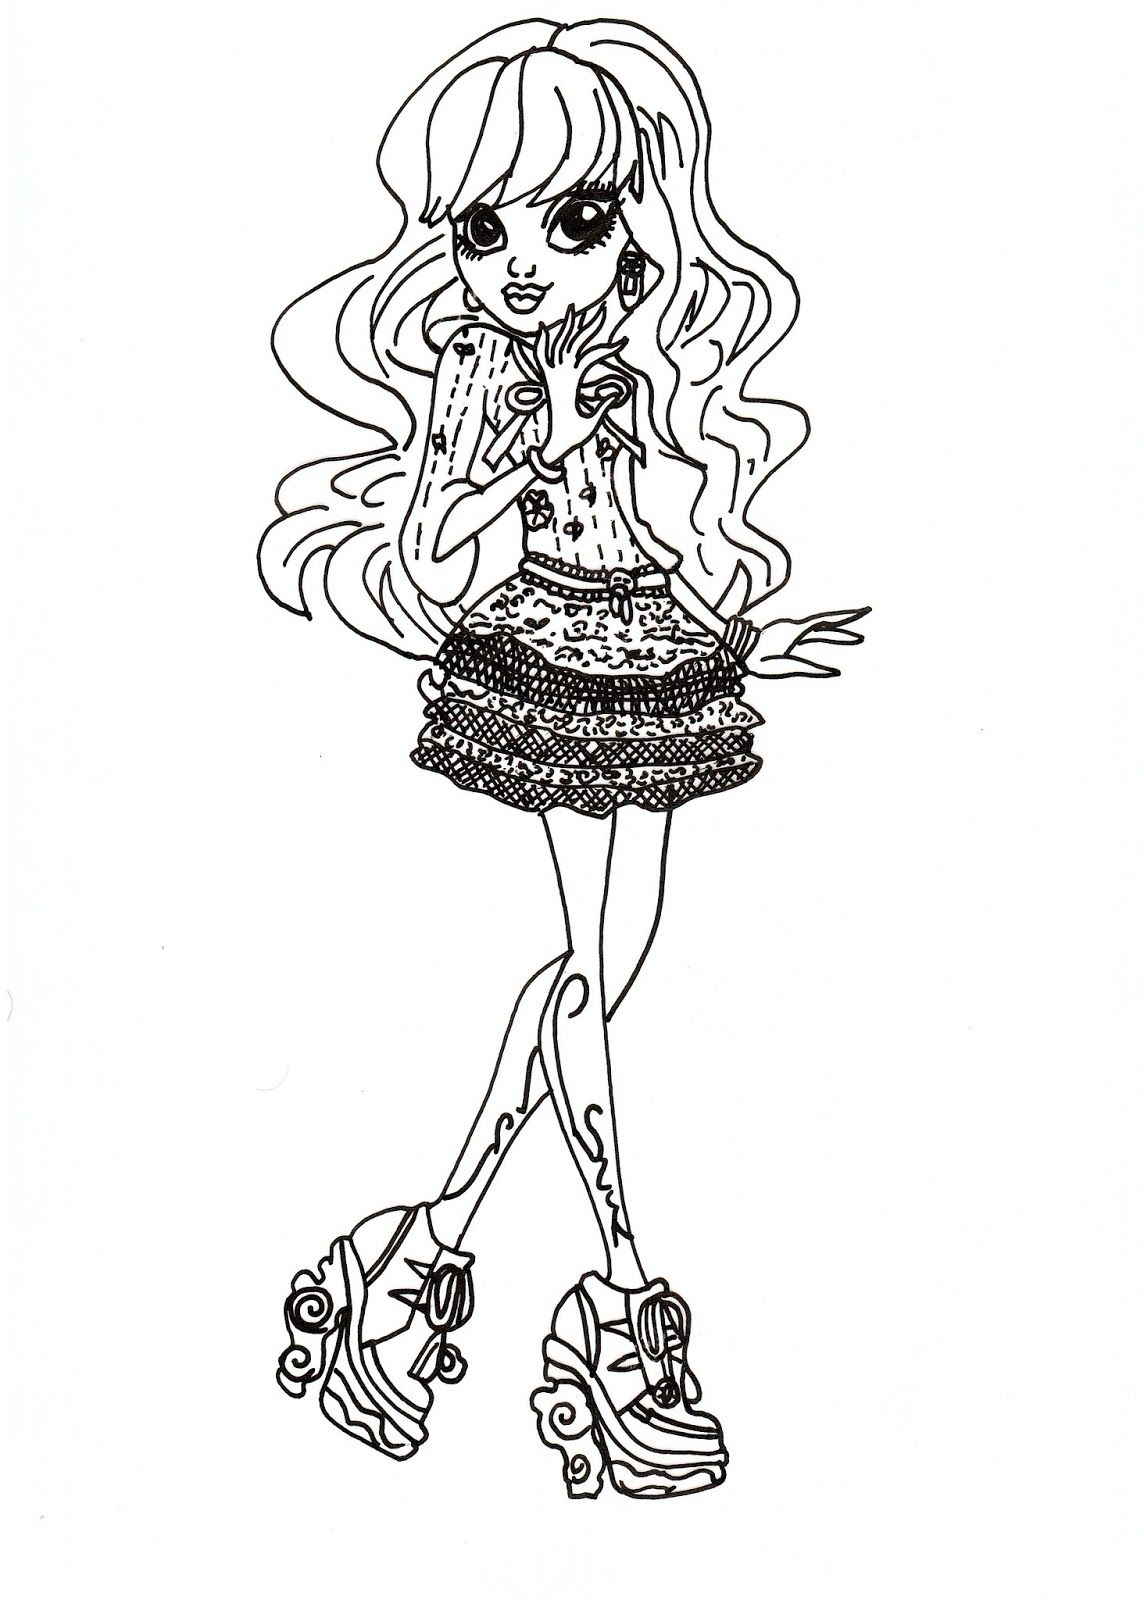 Monster High Draculaura Ausmalbilder : Free Printable Monster High Coloring Pages For Kids Monster High